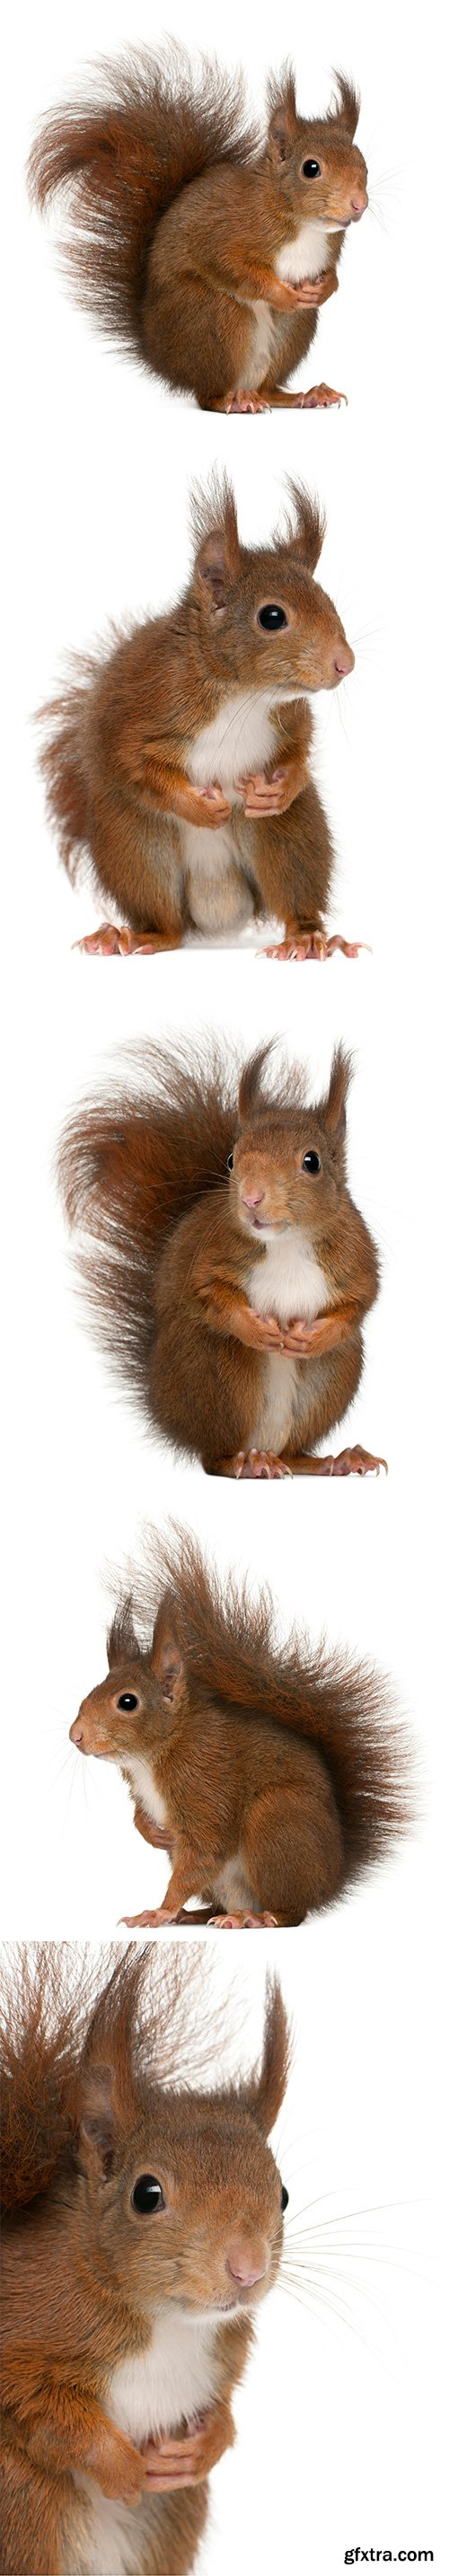 Eurasian Red Squirrel Isolated - 7xJPGs